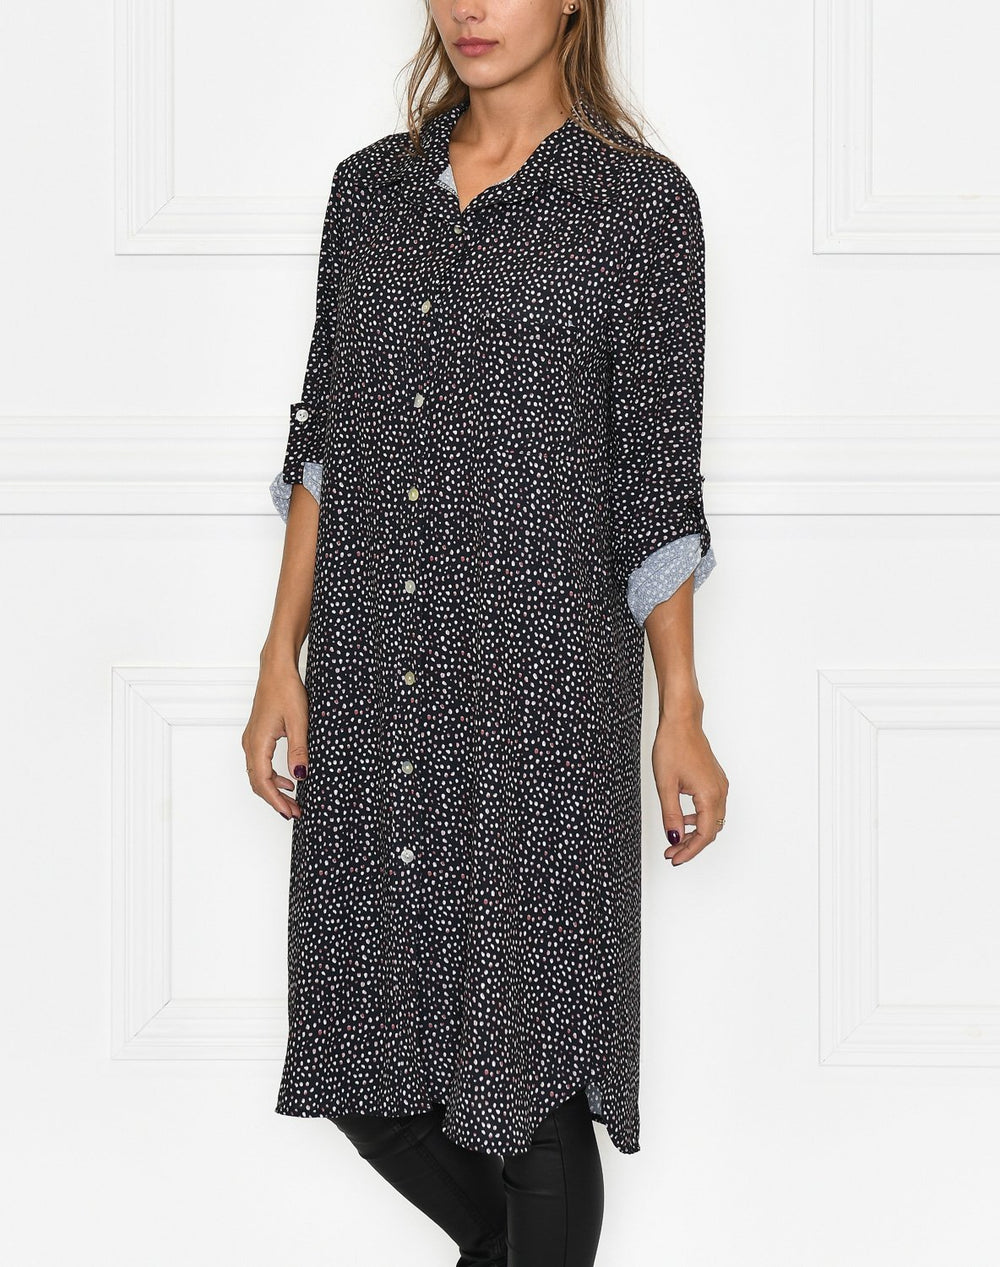 Karoline shirt dress black with dots - Online-Mode